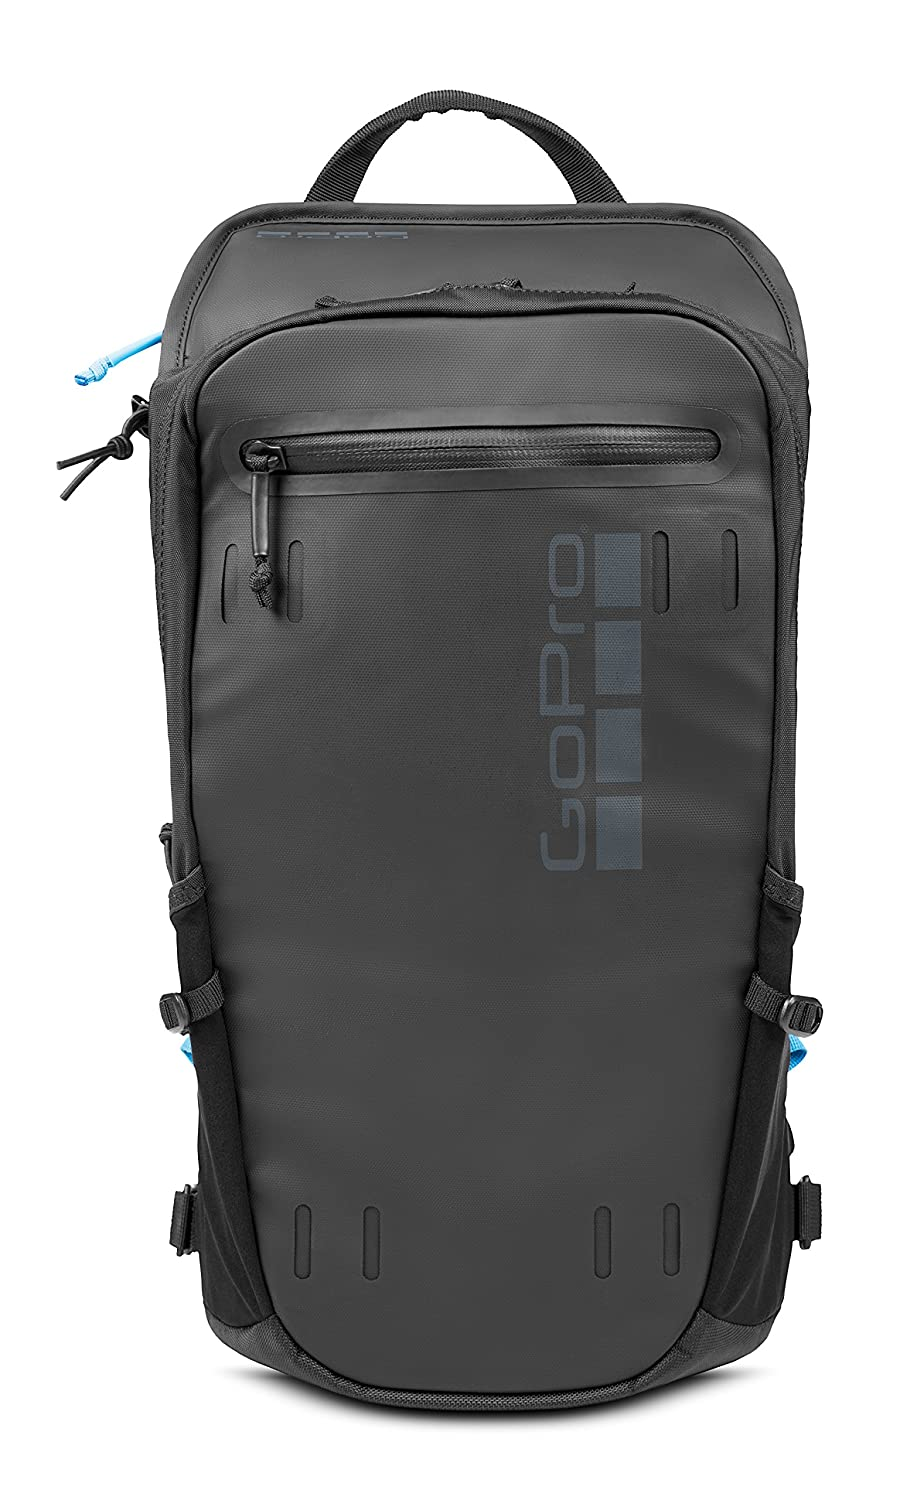 GoPro Seeker Backpack (GoPro Official Accessory) GoPro Accessories CA AWOPB-001